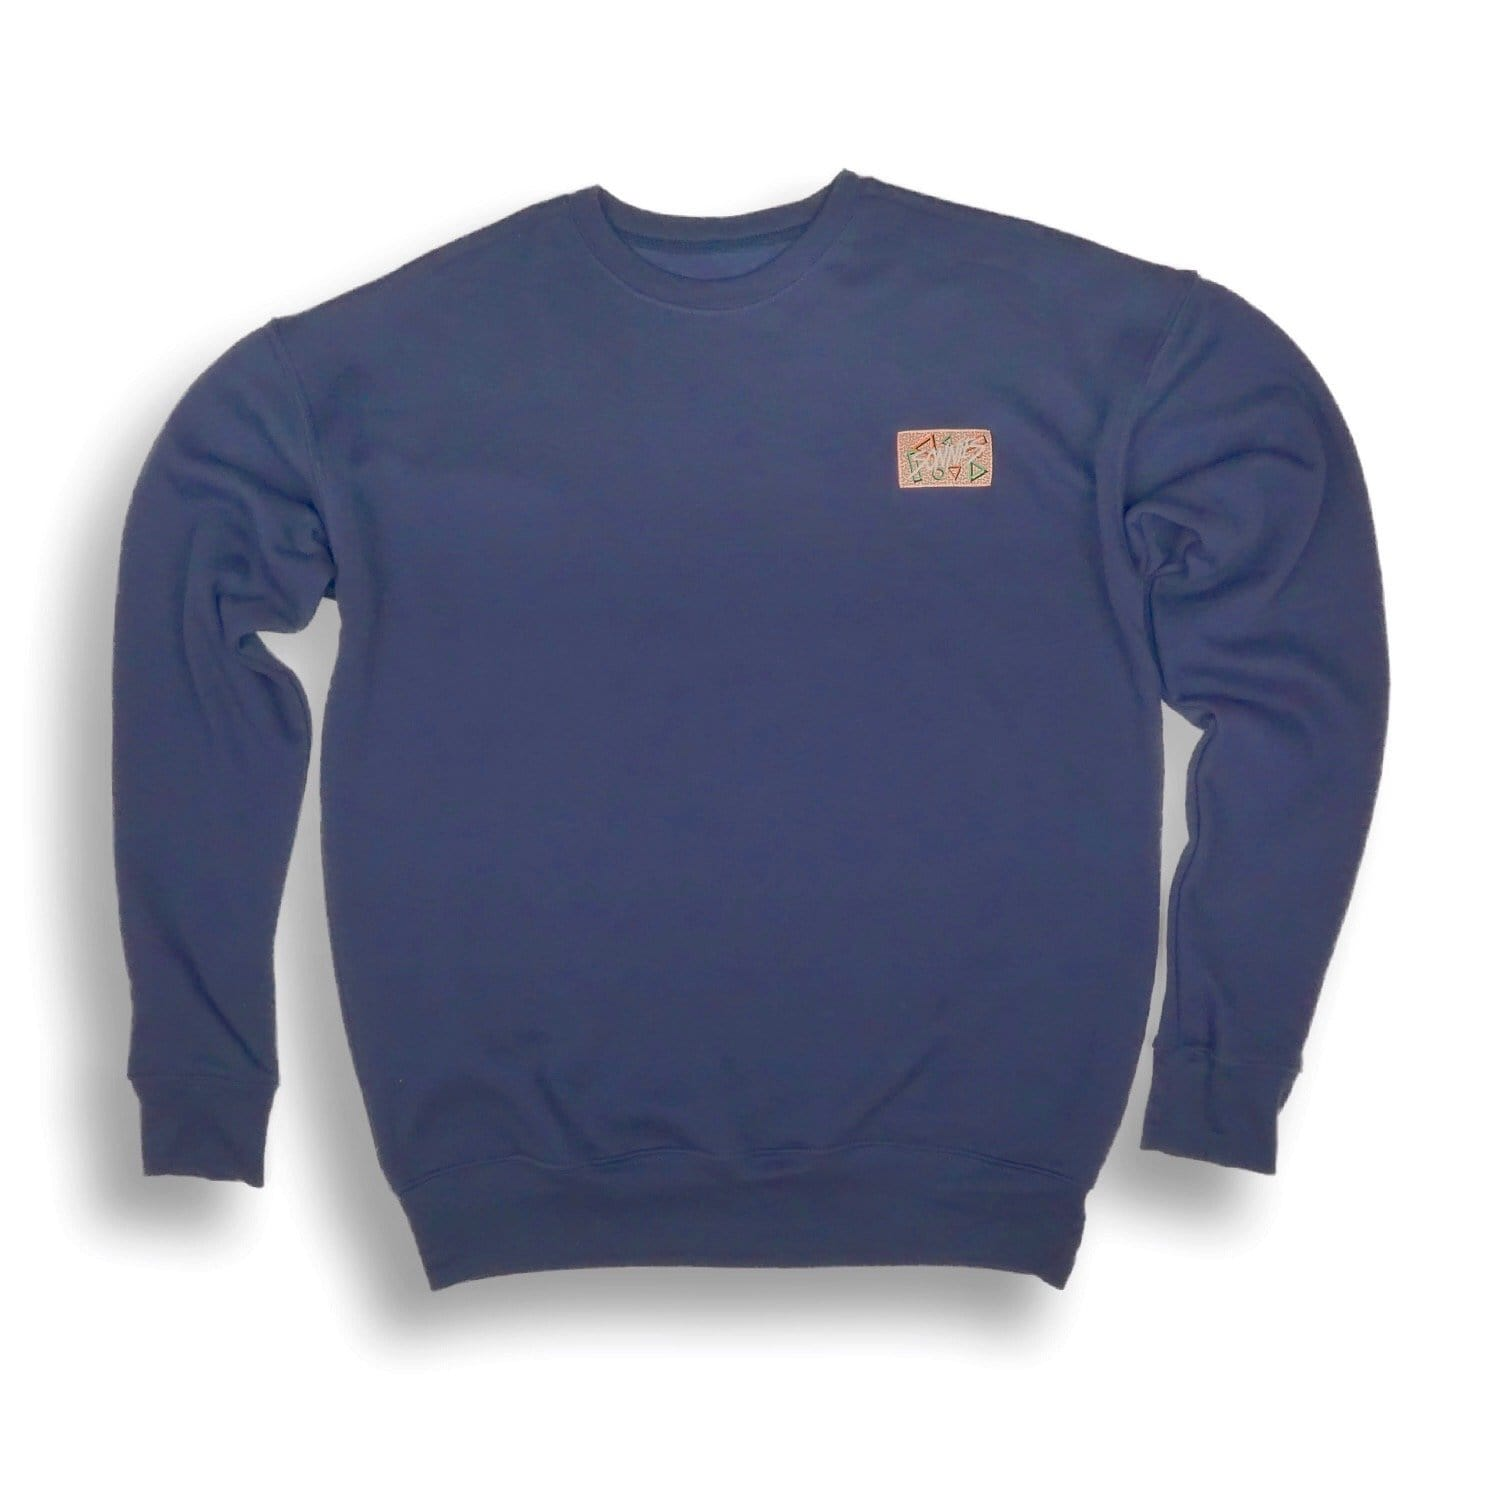 Sonnies Outside - Navy Blue Hiking Clothes Comfortable Soft Sweatshirt